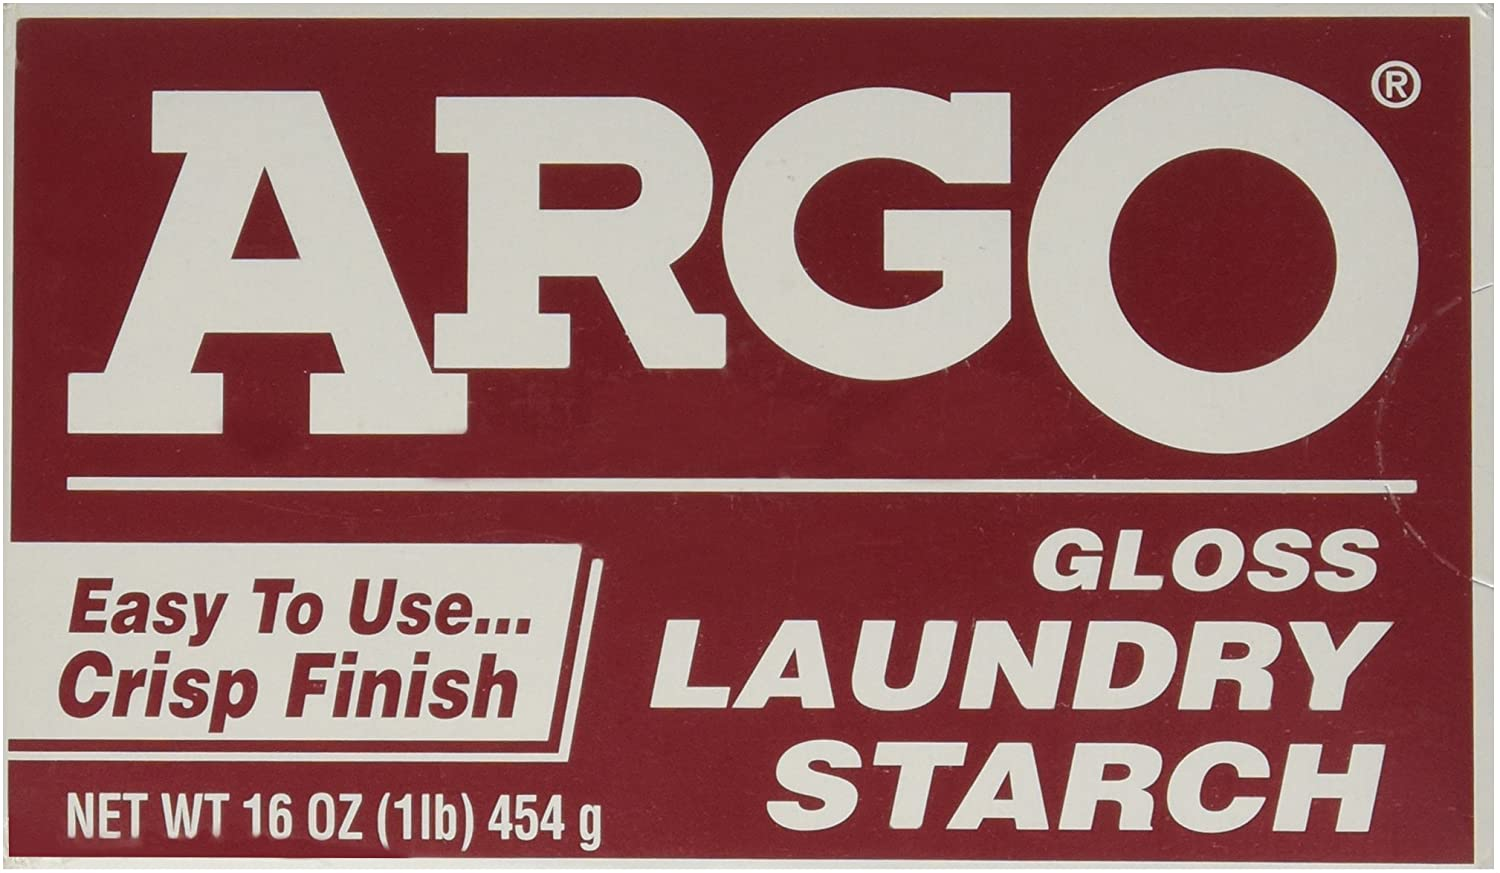 Argo Gloss Laundry Starch